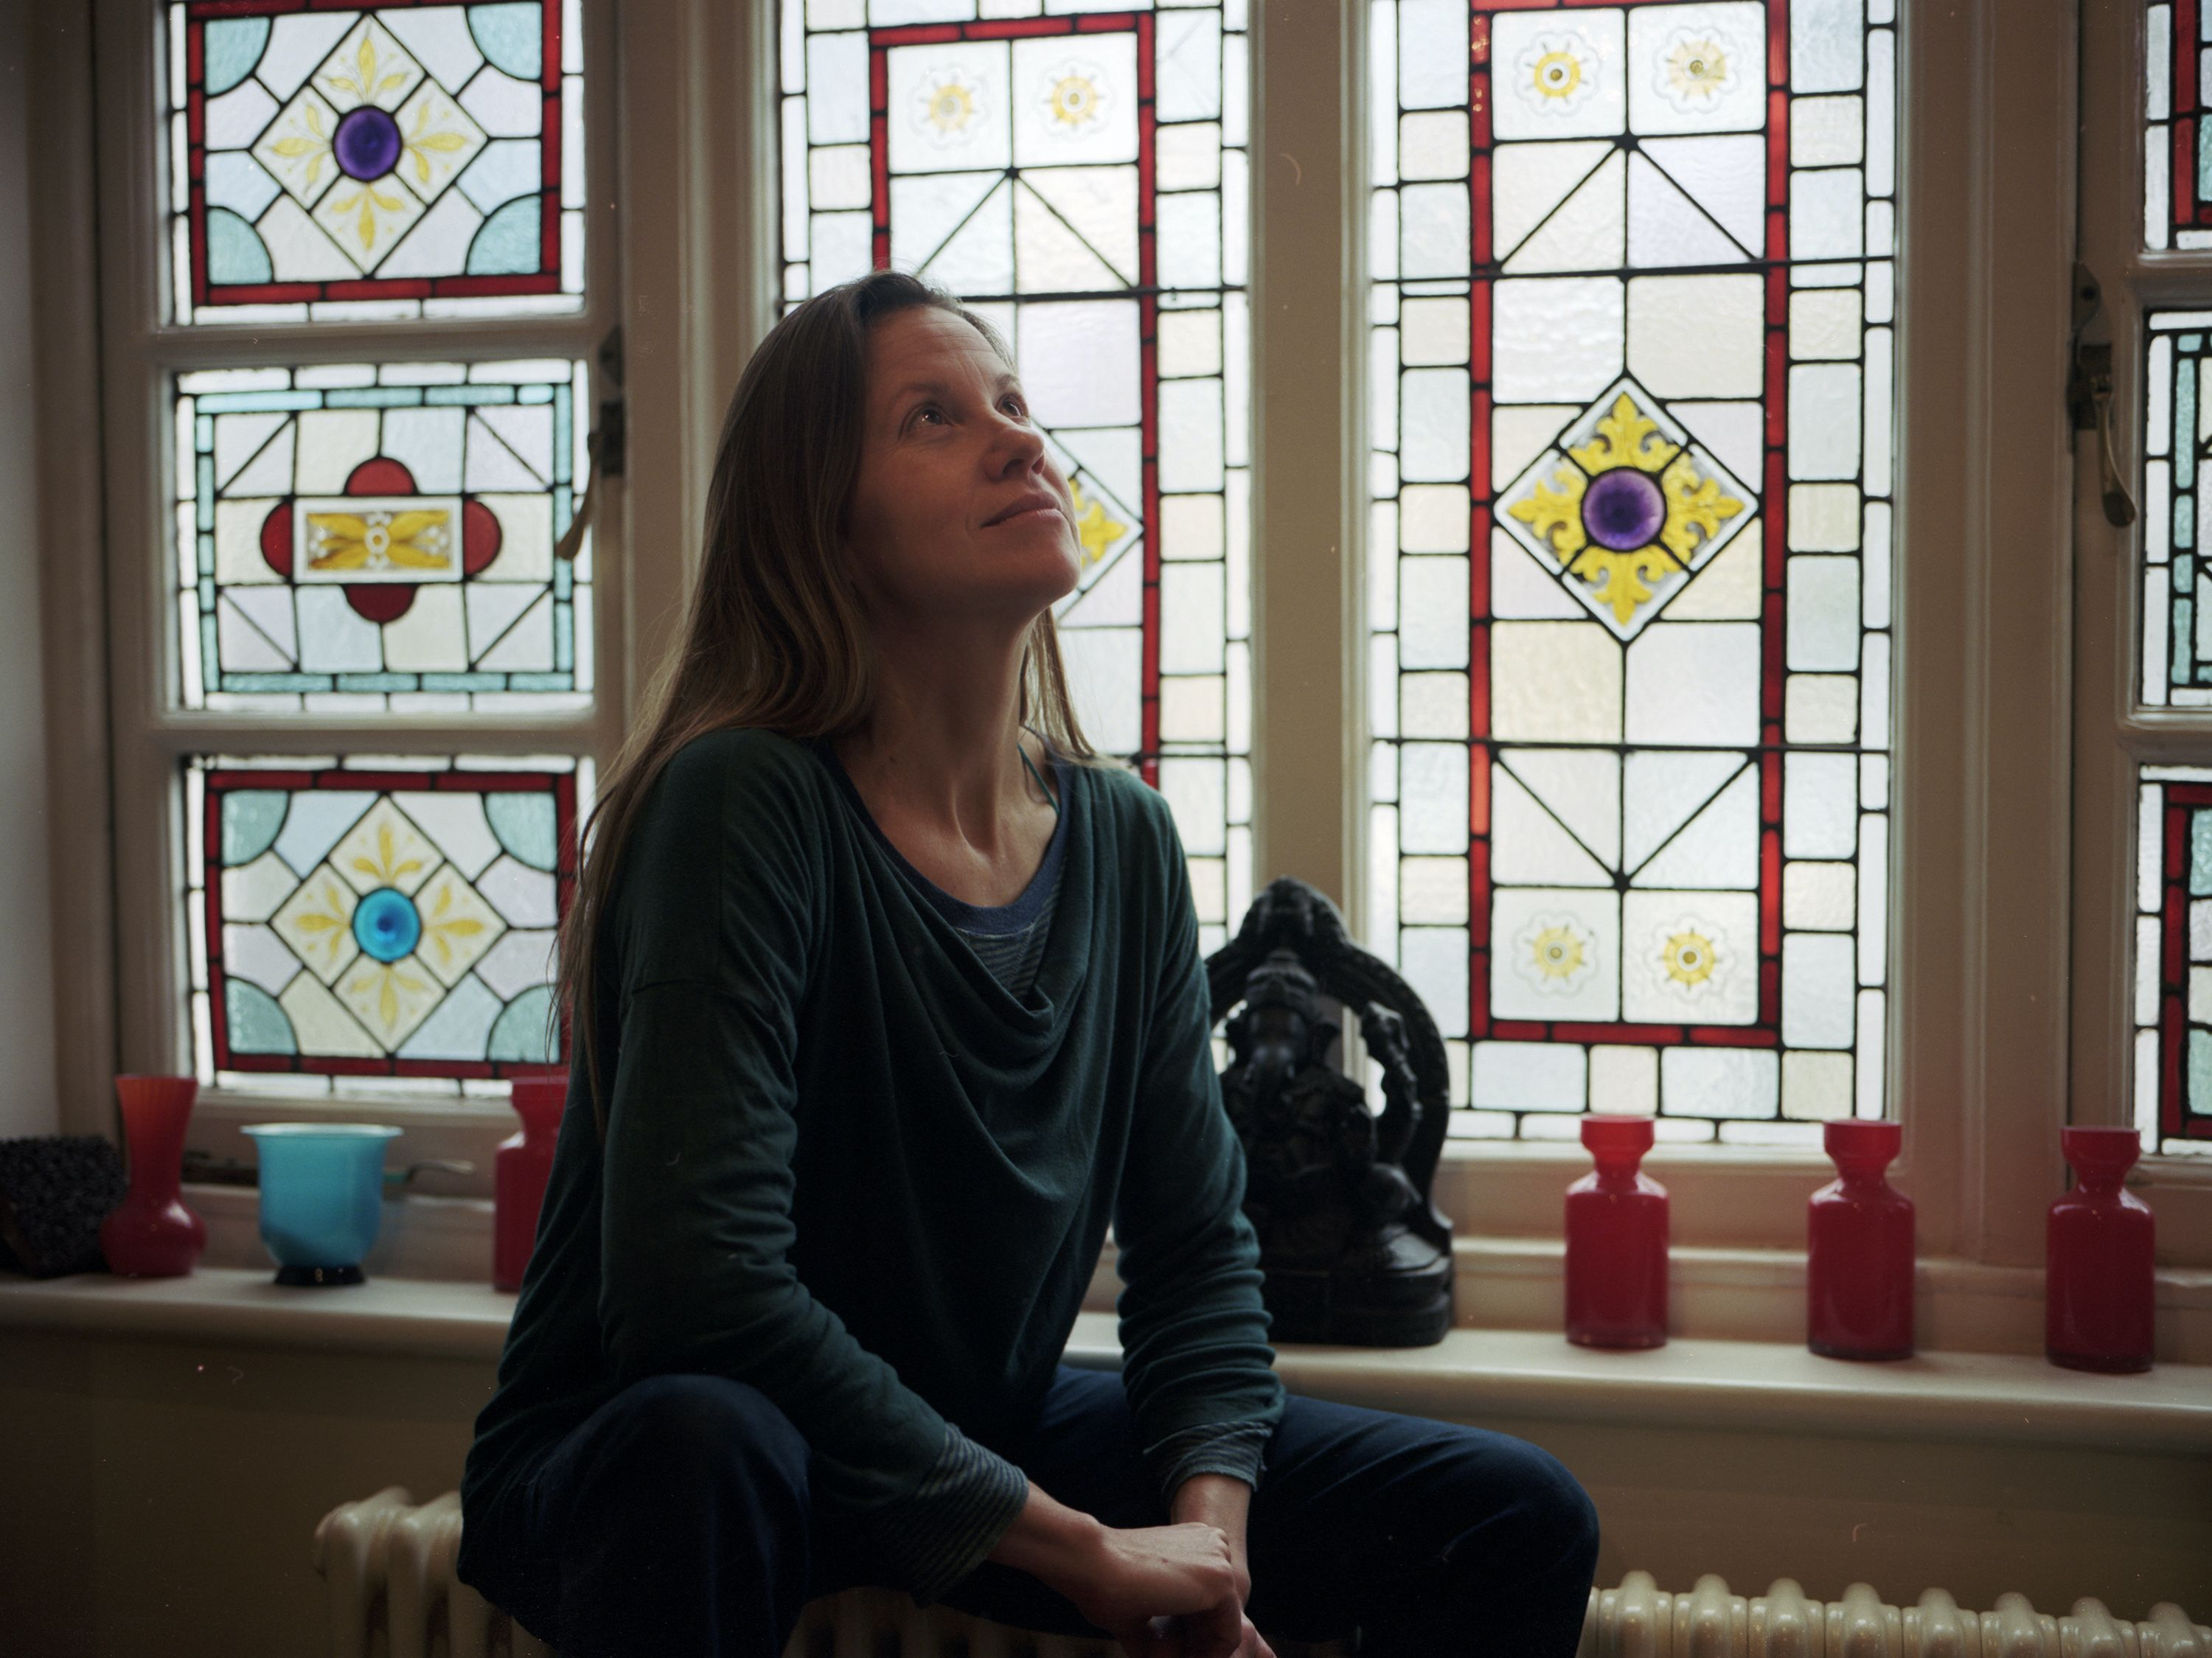 A woman sitting near a stain glass window